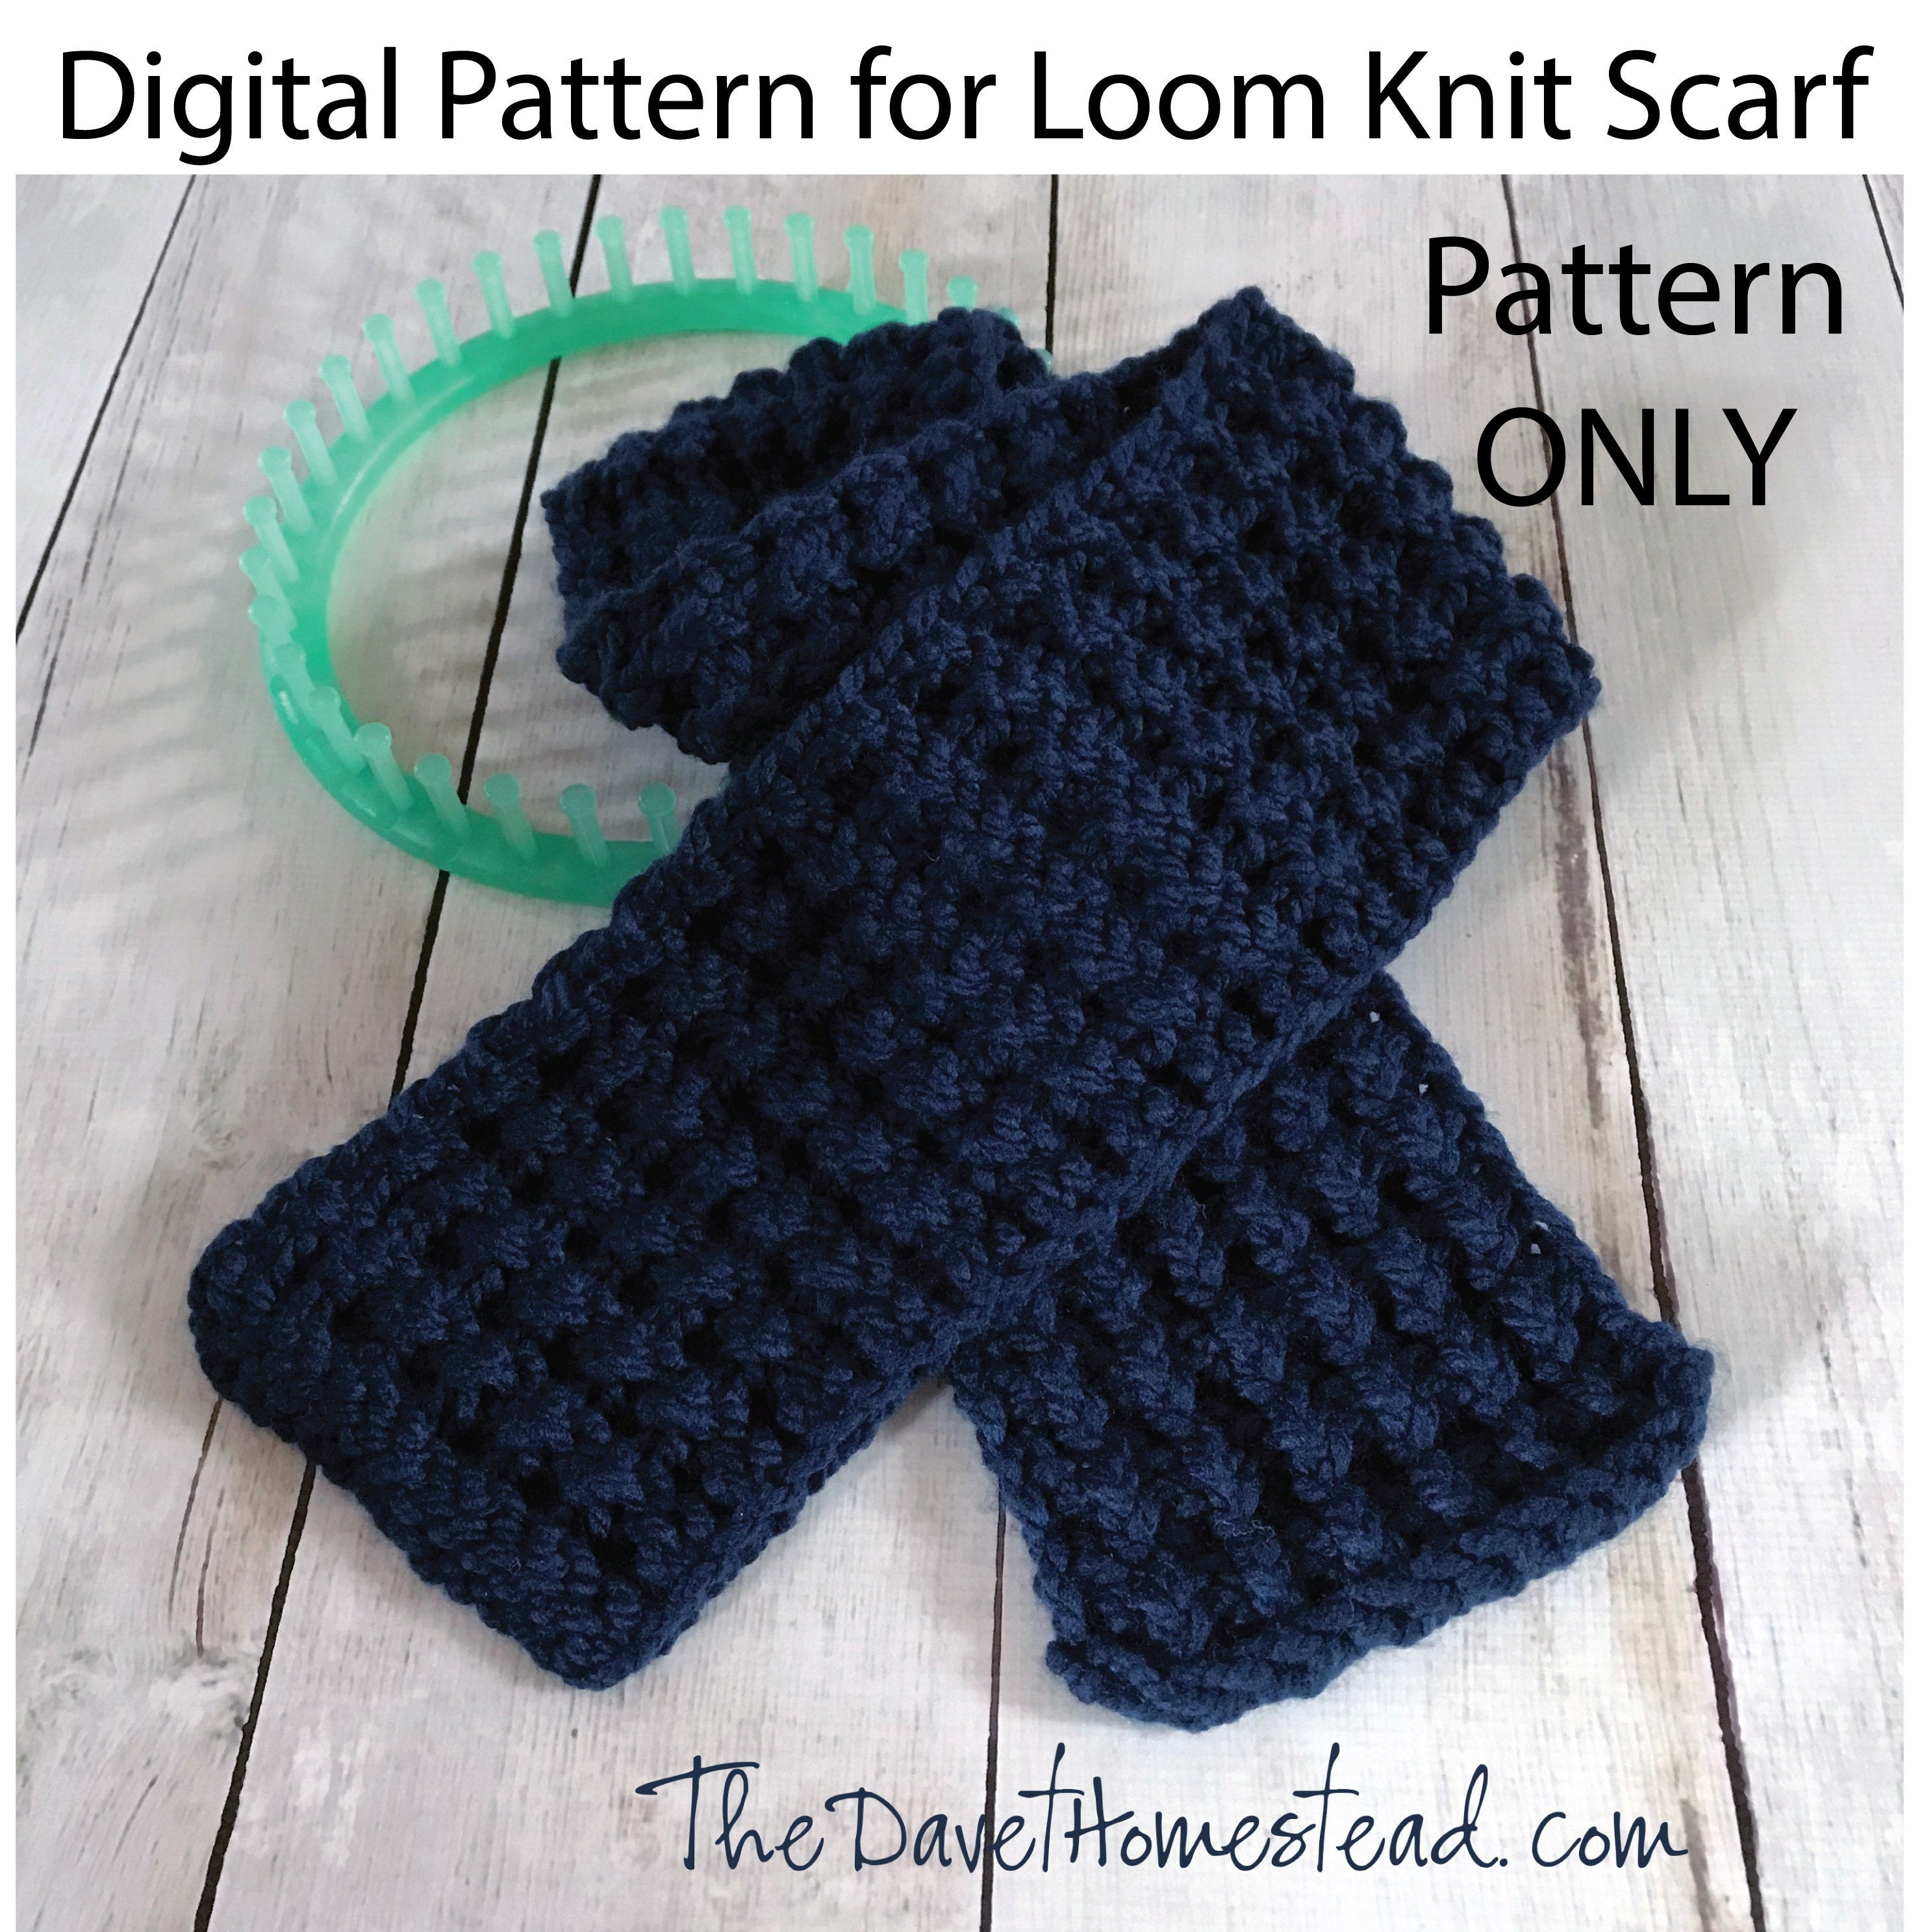 Knitted Pattern Hurdle Stitch Scarf Loom Knitted Pattern And Video Tutorial